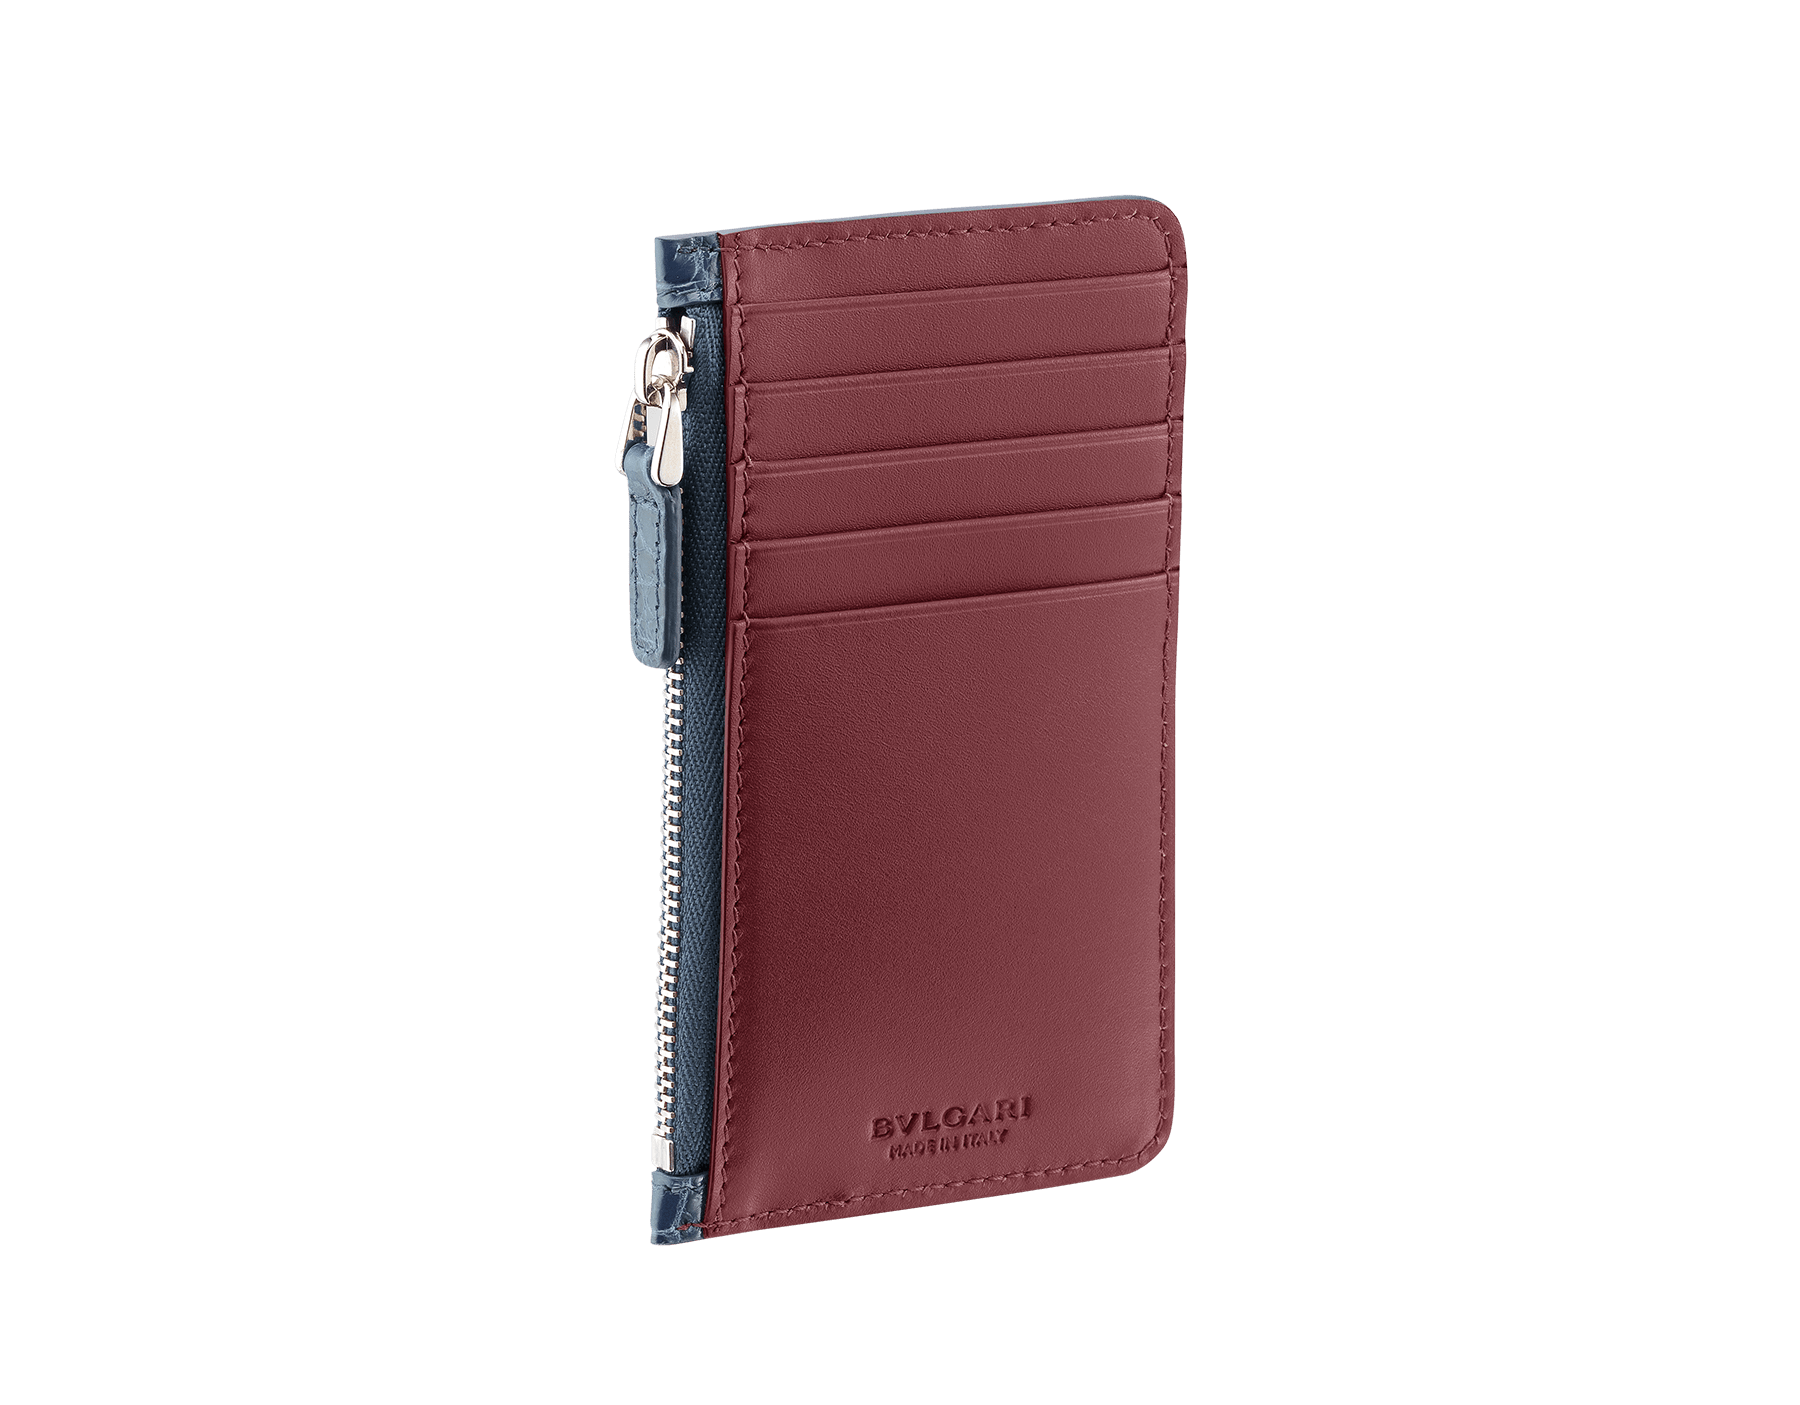 Credit card holder in Roman garnet shiny crocodile skin and denim sapphire smooth calf leather with brass palladium plated BVLGARI BVLGARI motif. BBM-CC-HOLDER-ZIP image 1